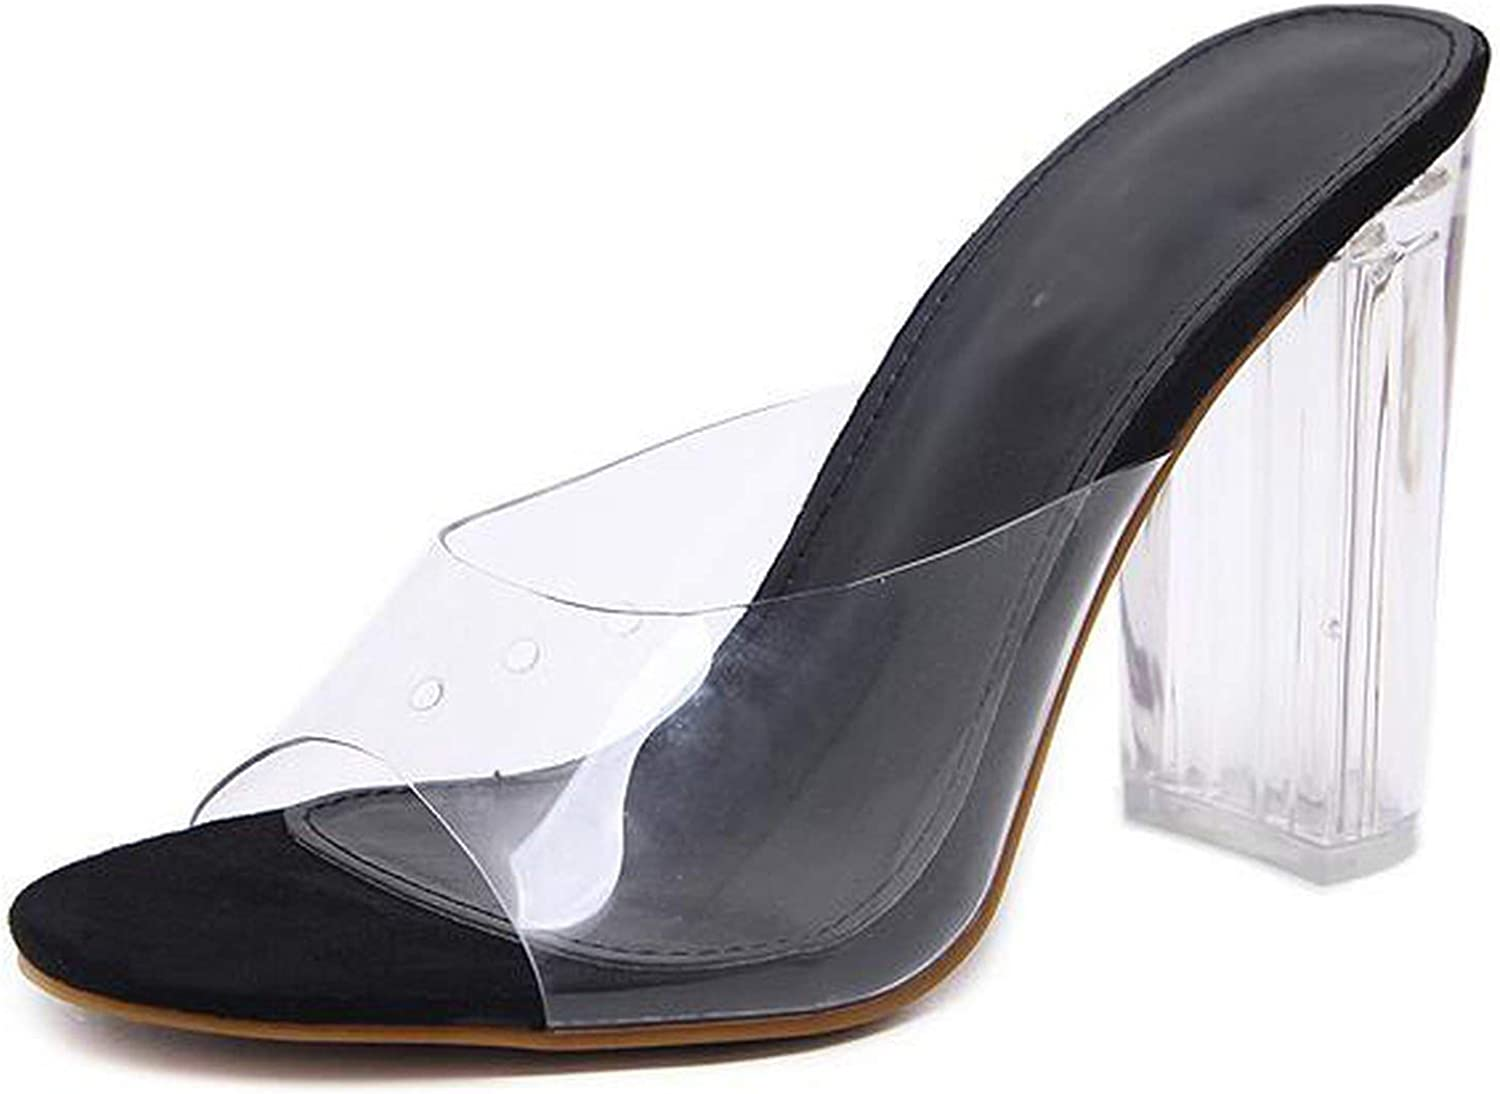 Peony red Women Sandals PVC Crystal Heel Transparent Women Sexy Clear High Heels Summer Sandals Pumps shoes Size 41 42